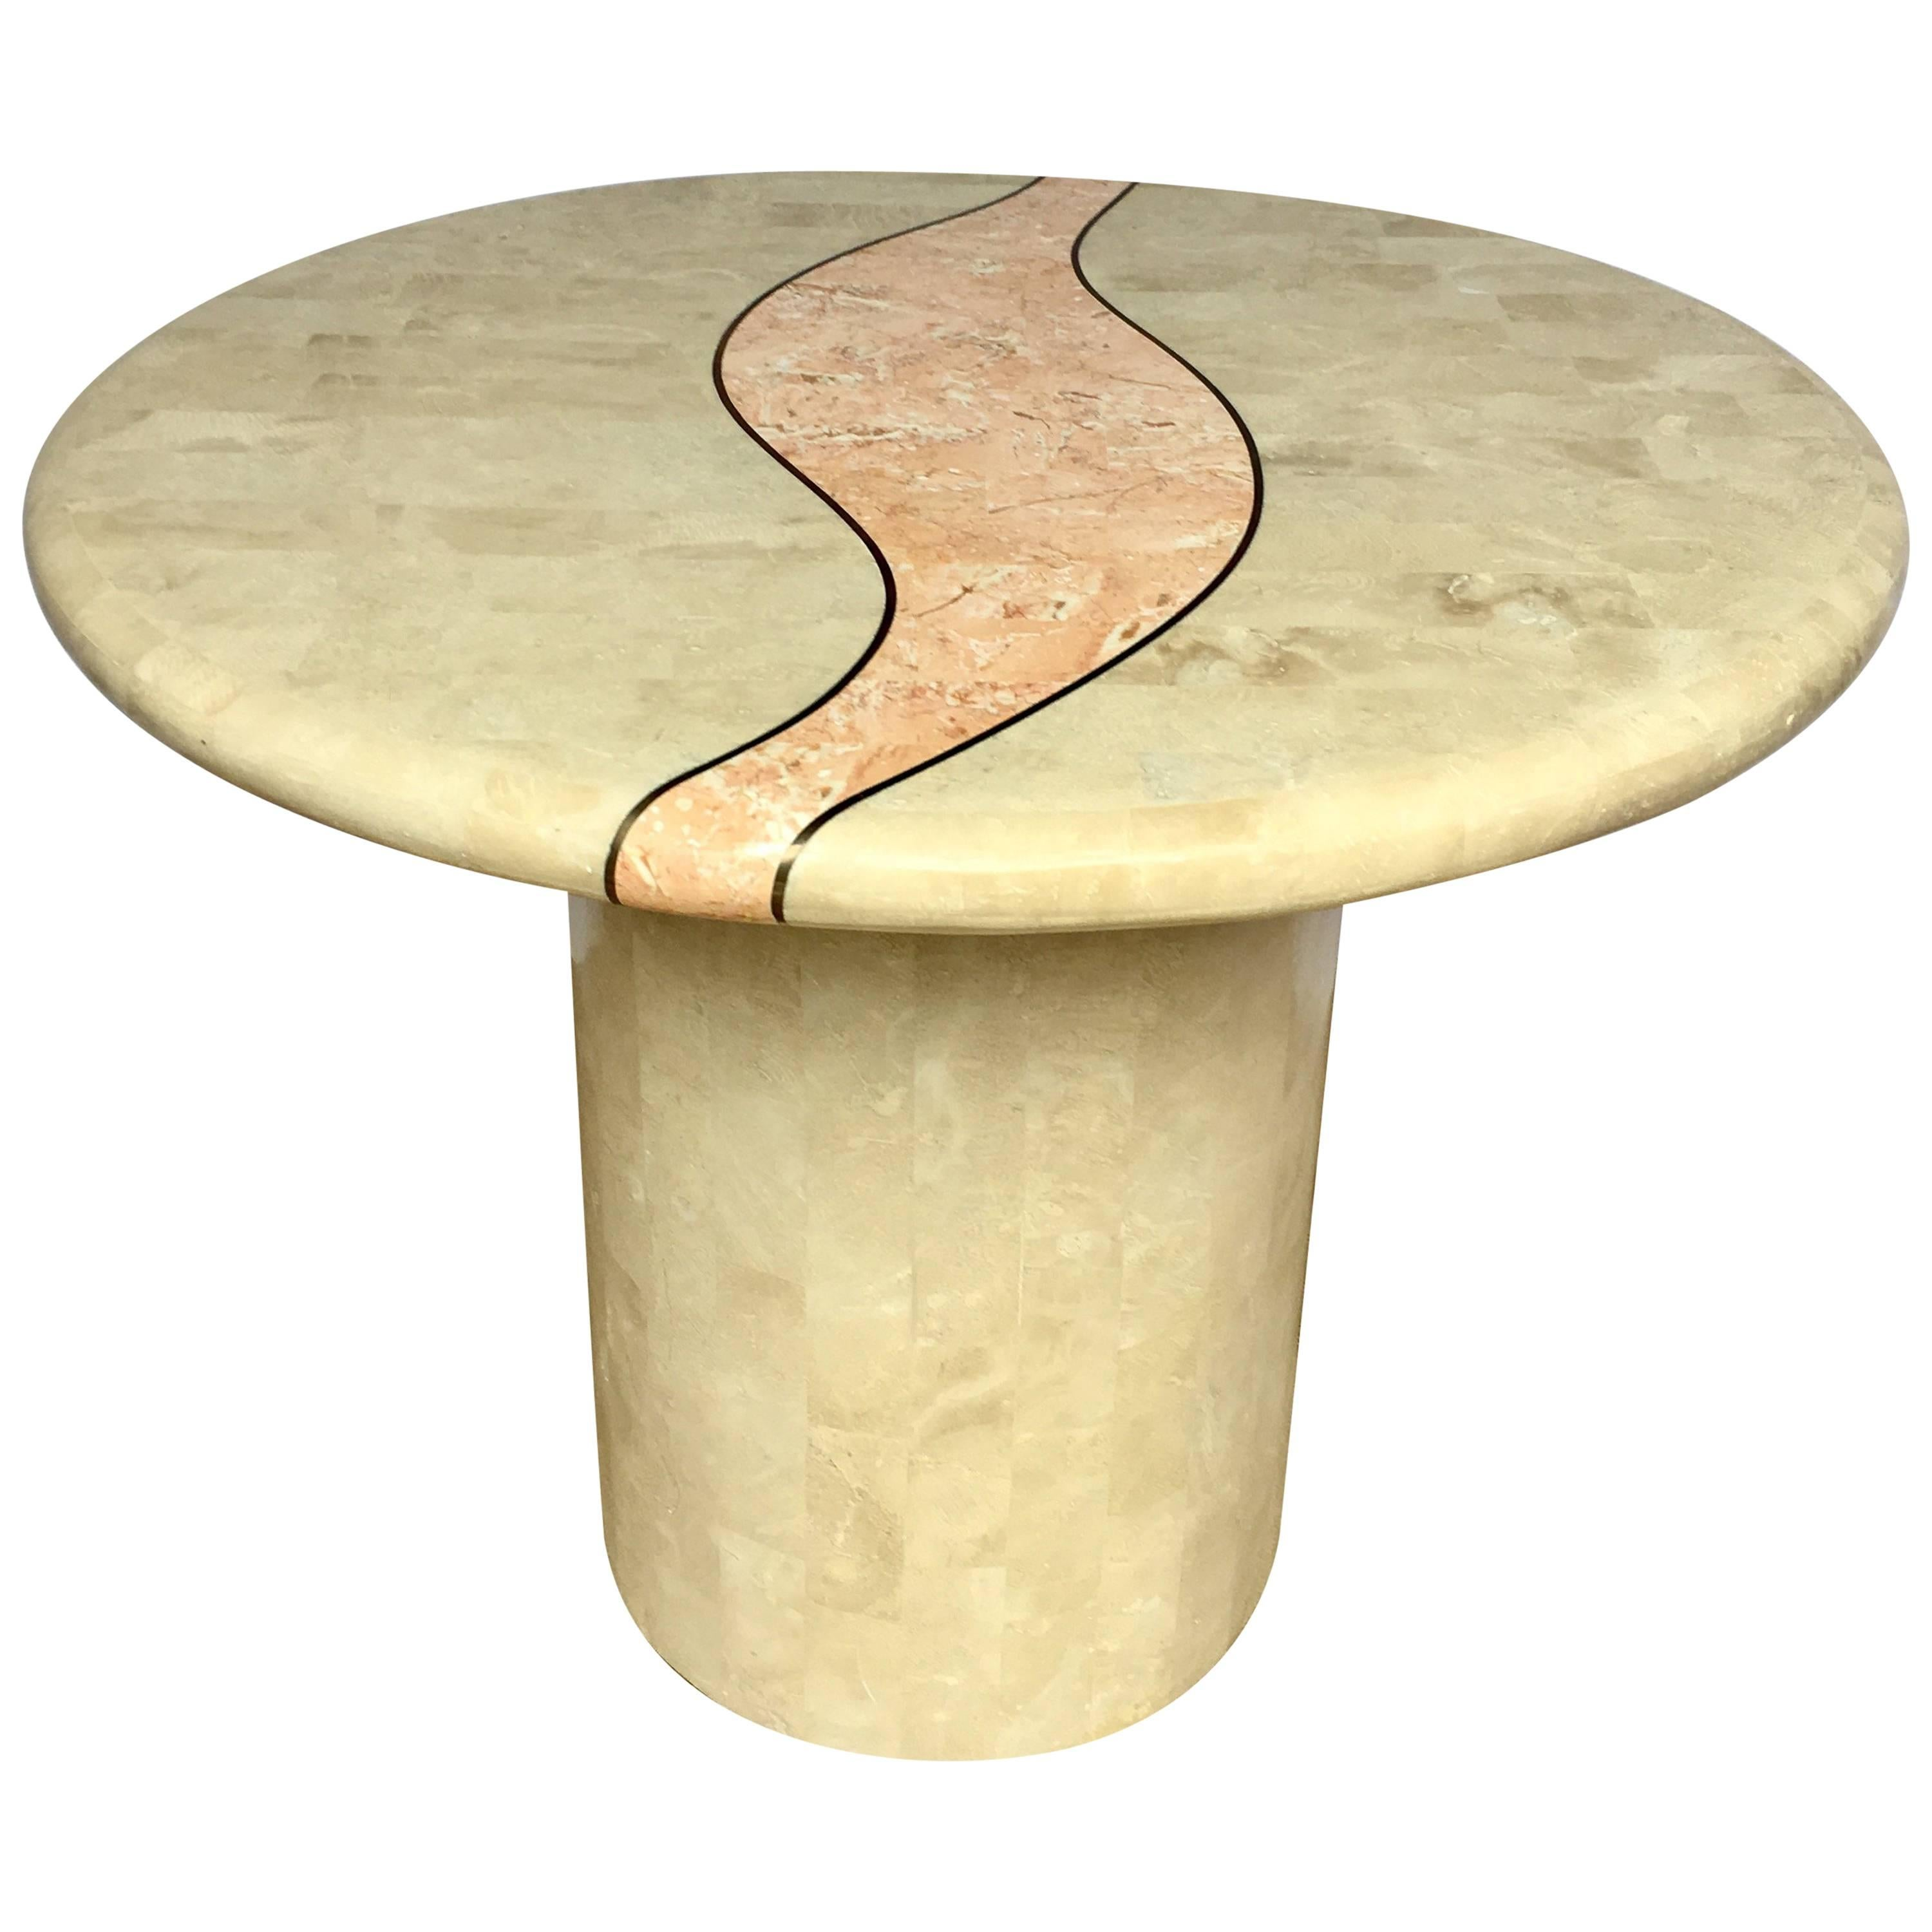 Casa Bique Round Tesselated Fossil Stone Side Accent Table, Maitland Smith